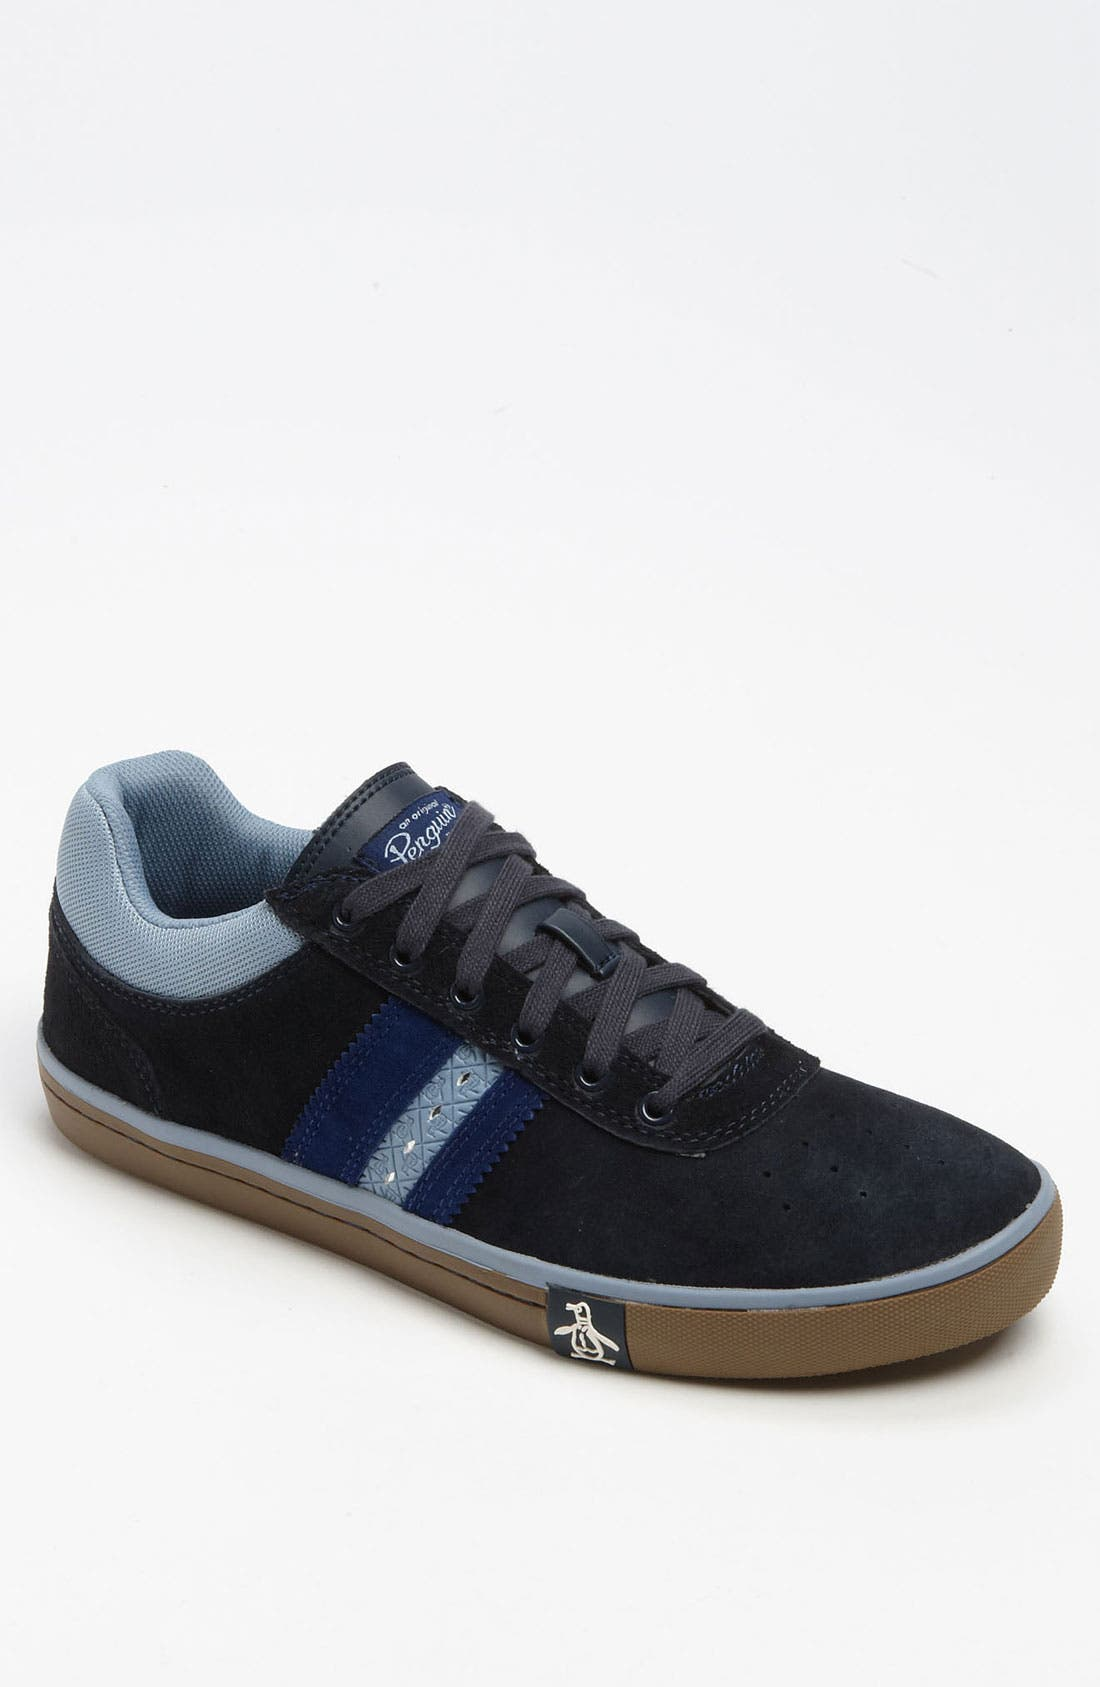 Main Image - Original Penguin 'Melt' Sneaker